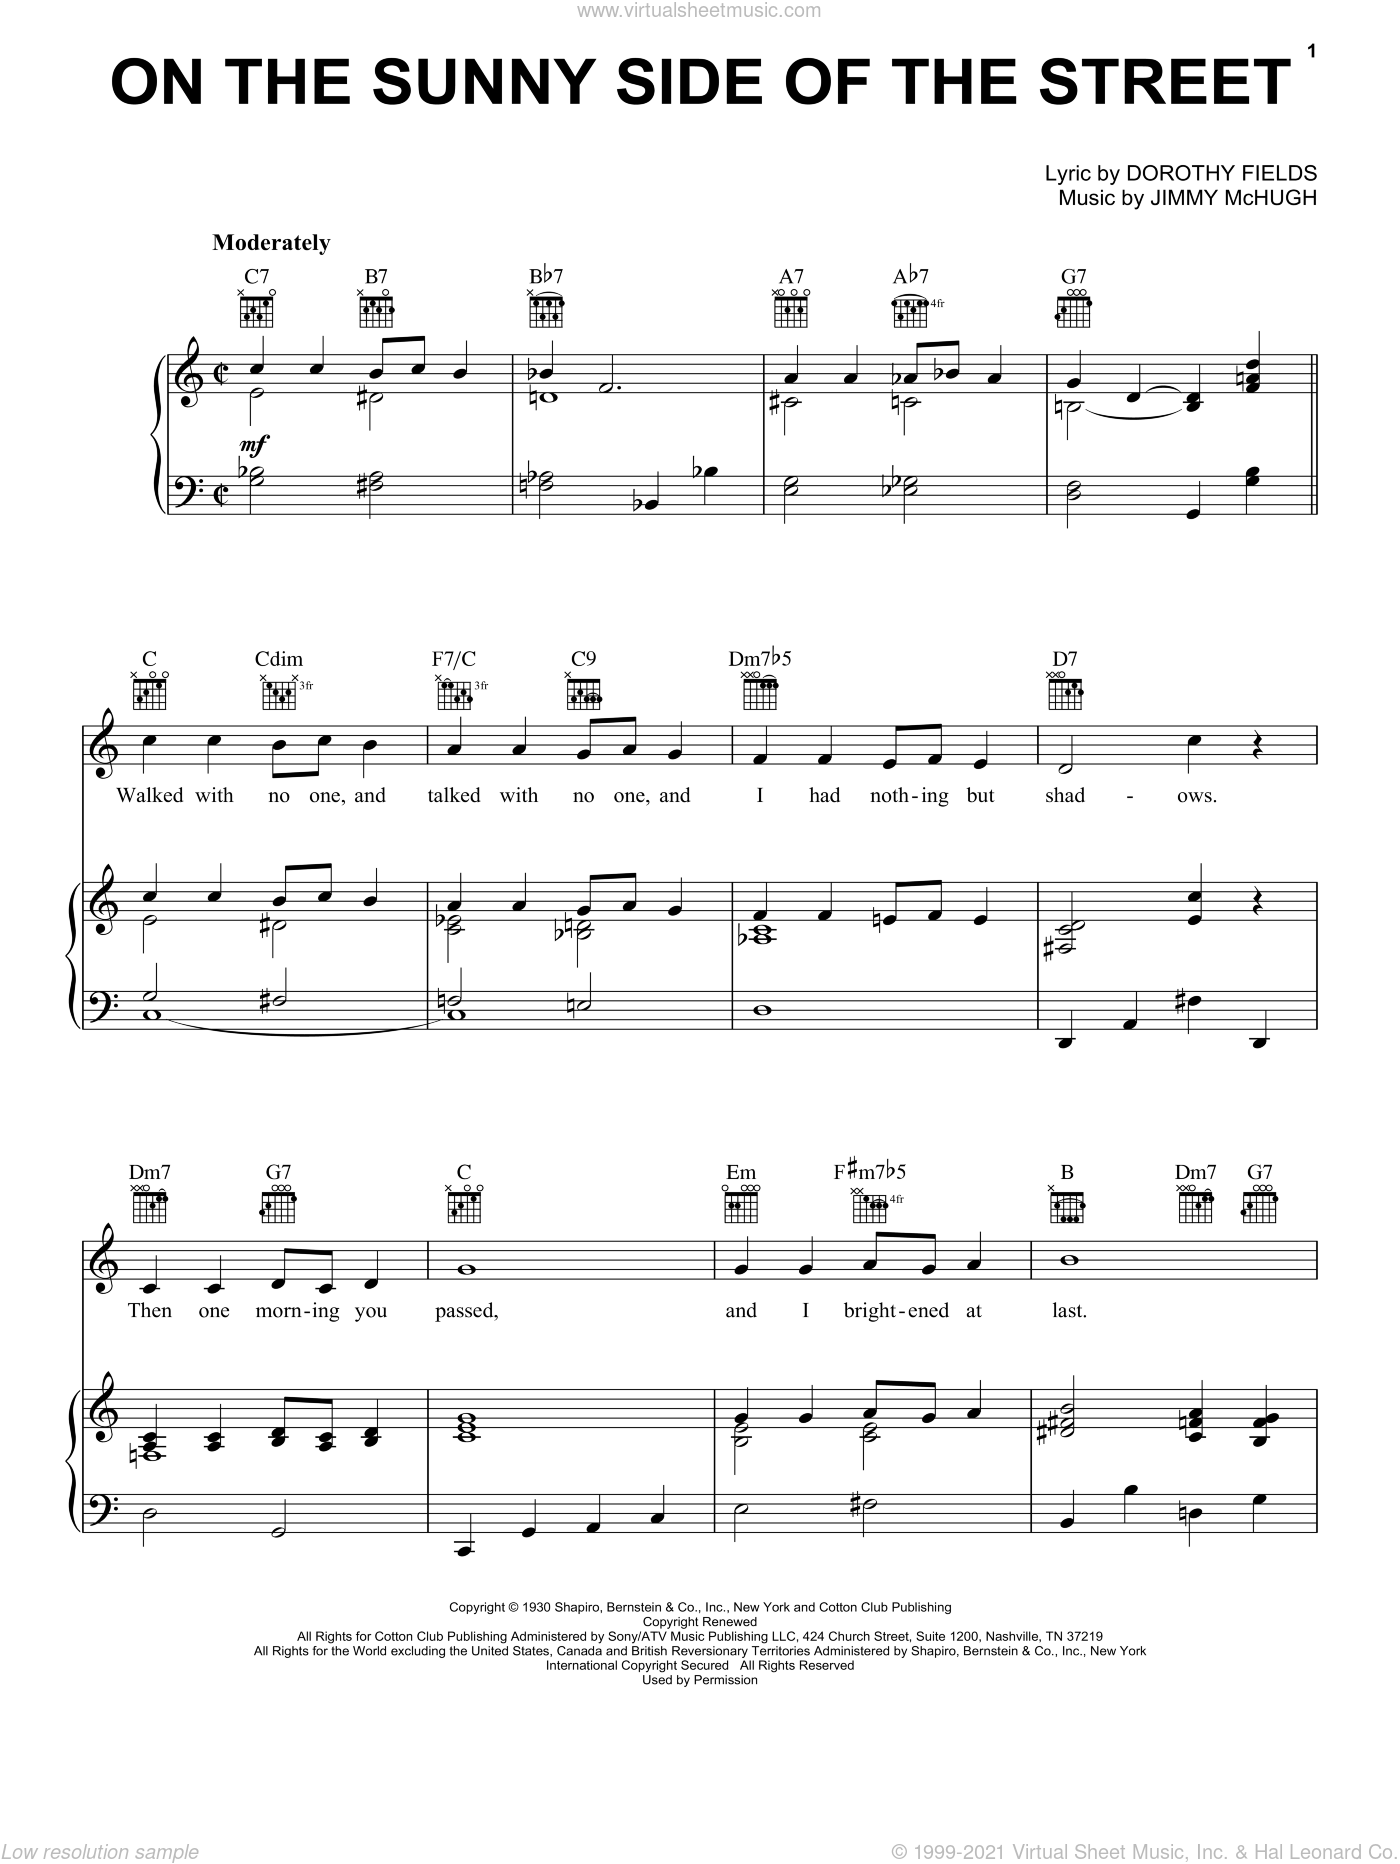 On The Sunny Side Of The Street sheet music for voice, piano or guitar by Dorothy Fields, Frank Sinatra, Louis Armstrong and Jimmy McHugh, intermediate skill level